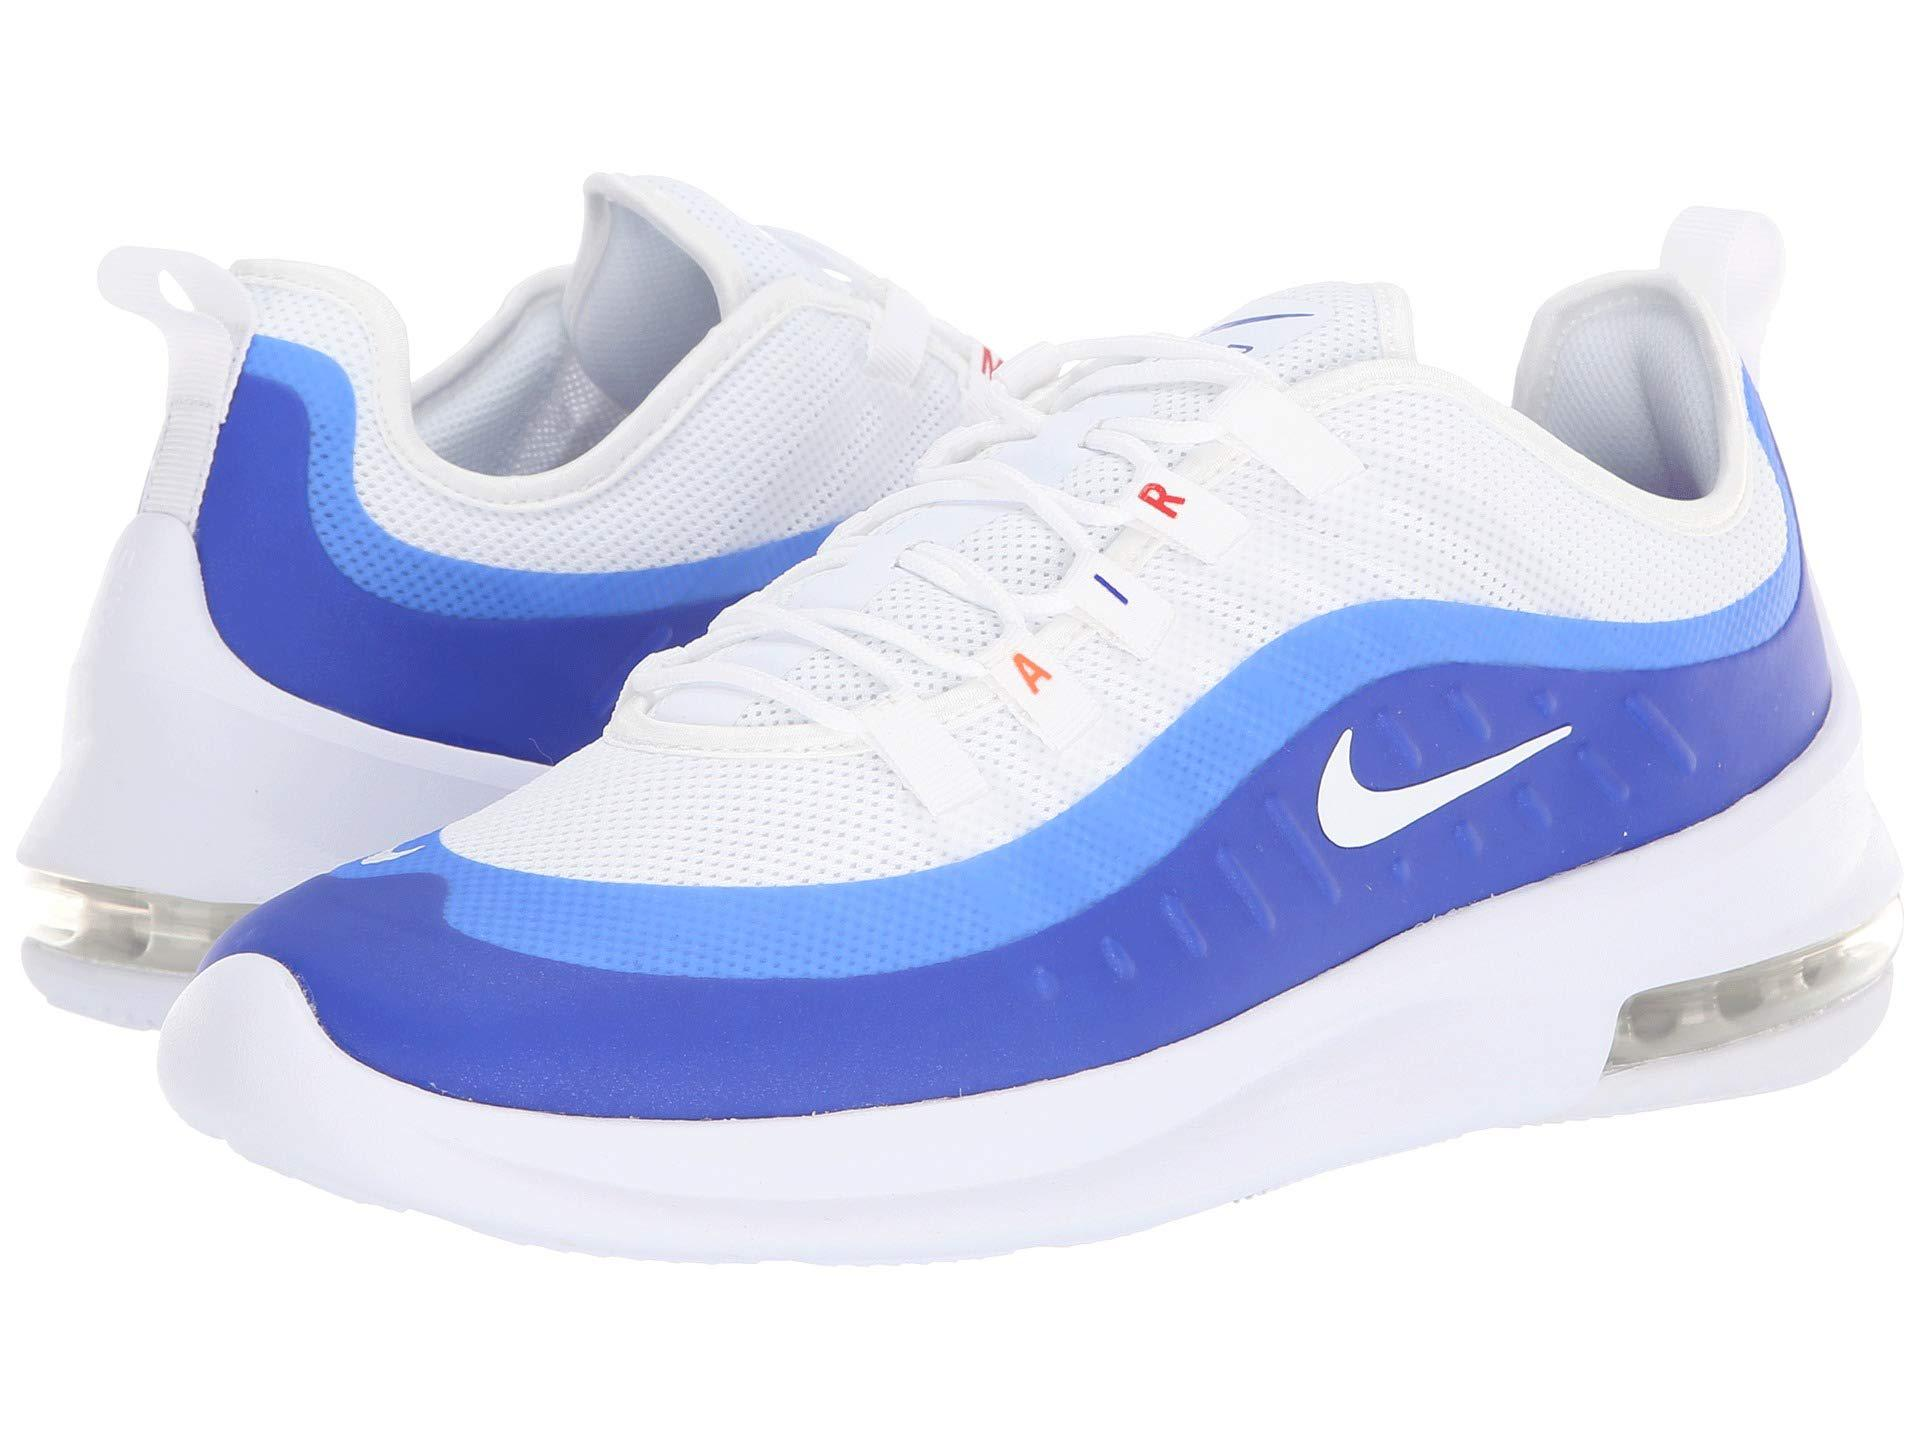 0c5e454ba4 Nike Air Max Axis Fitness Shoes in White for Men - Lyst